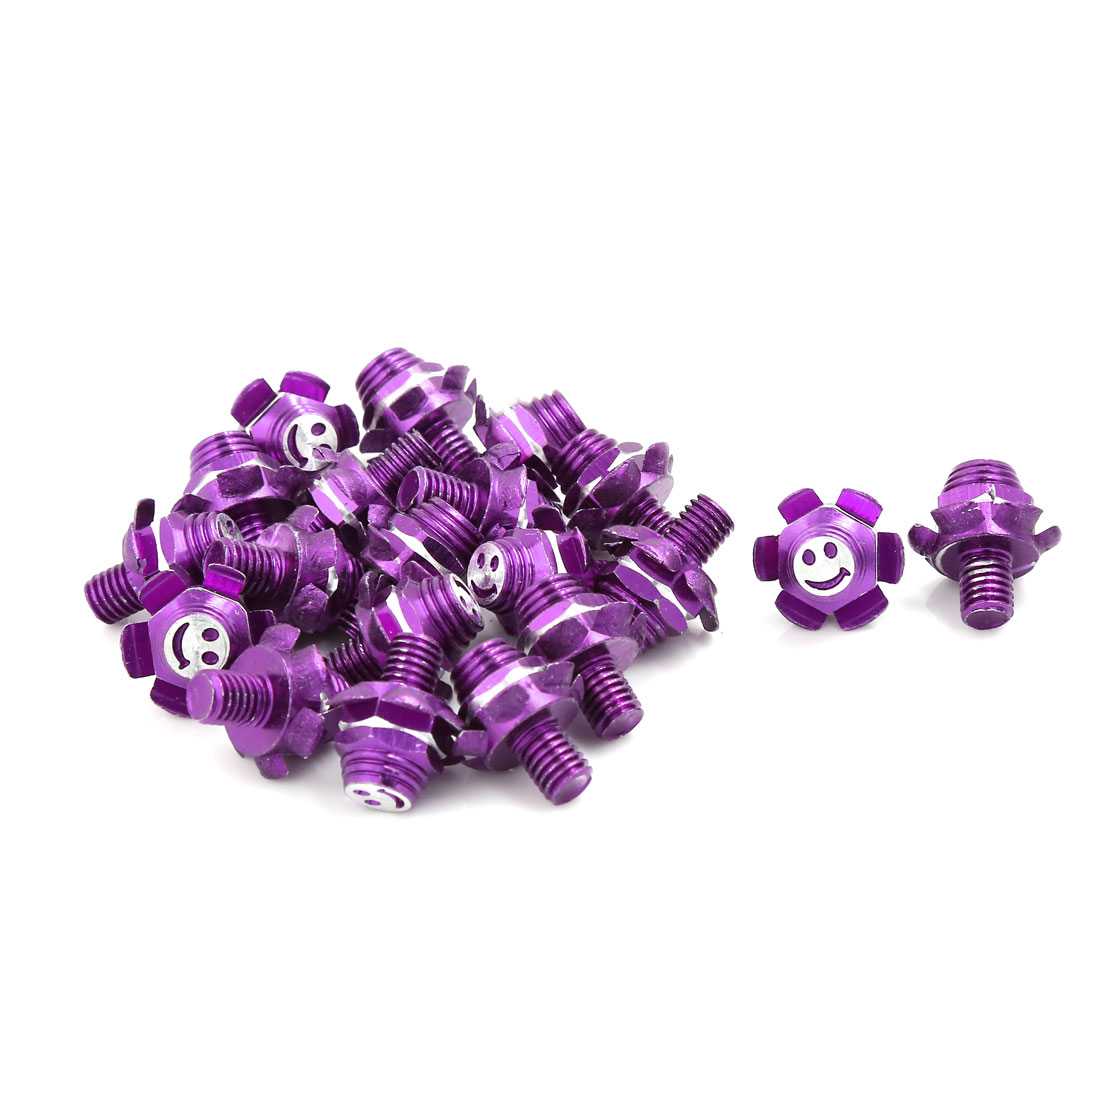 20 Pcs Purple Flower Design License Plate Bolts Screw 7mm Thread Dia for Car